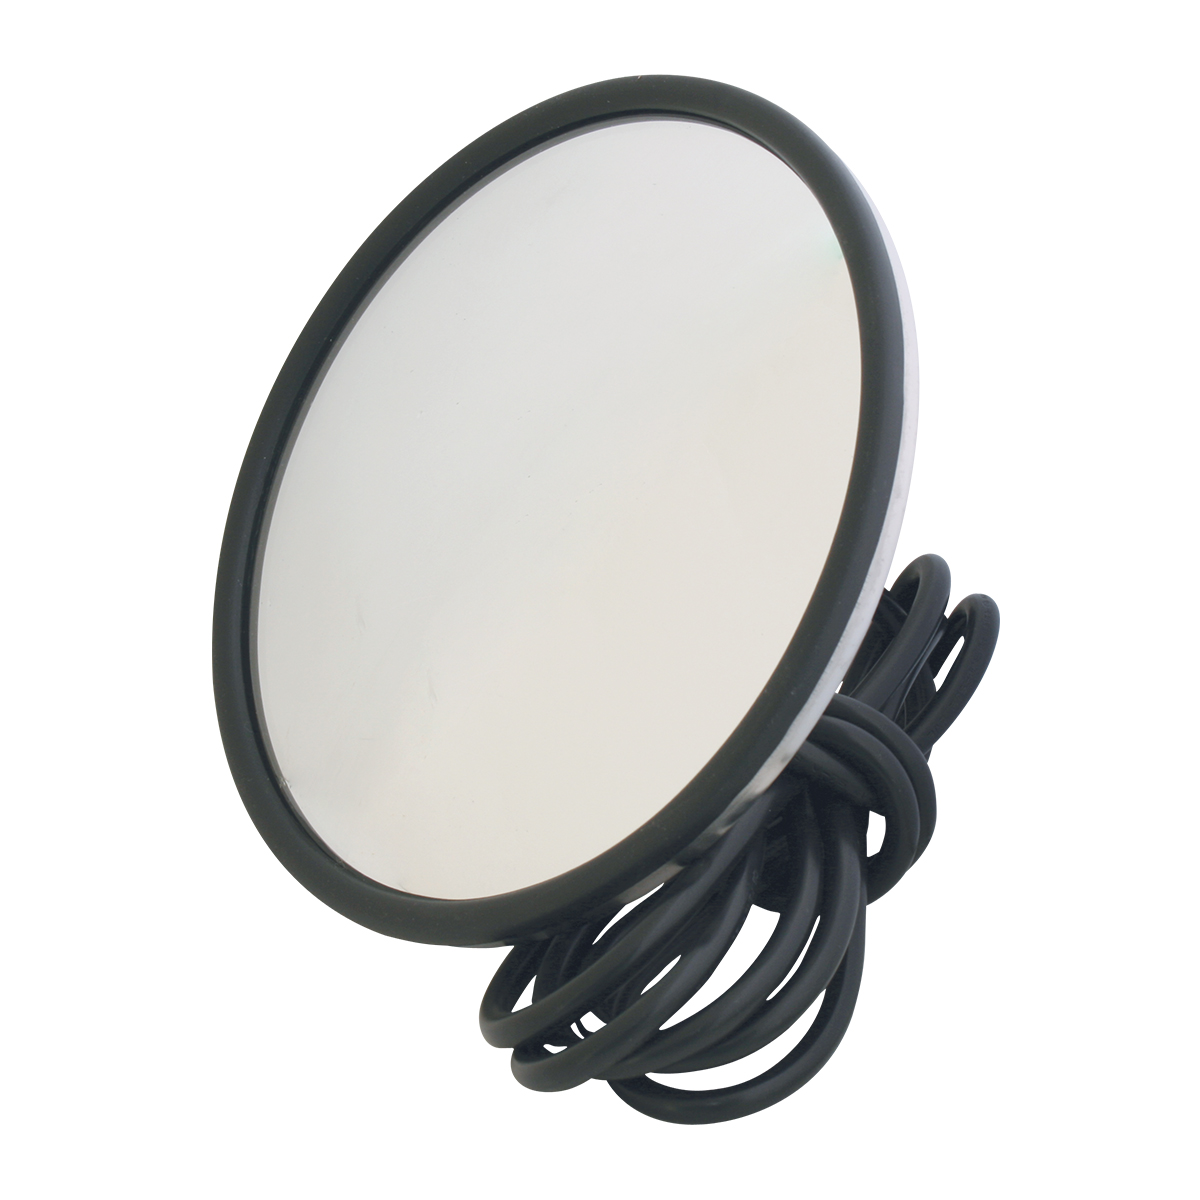 33332 Heated Convex Blind Spot Mirror